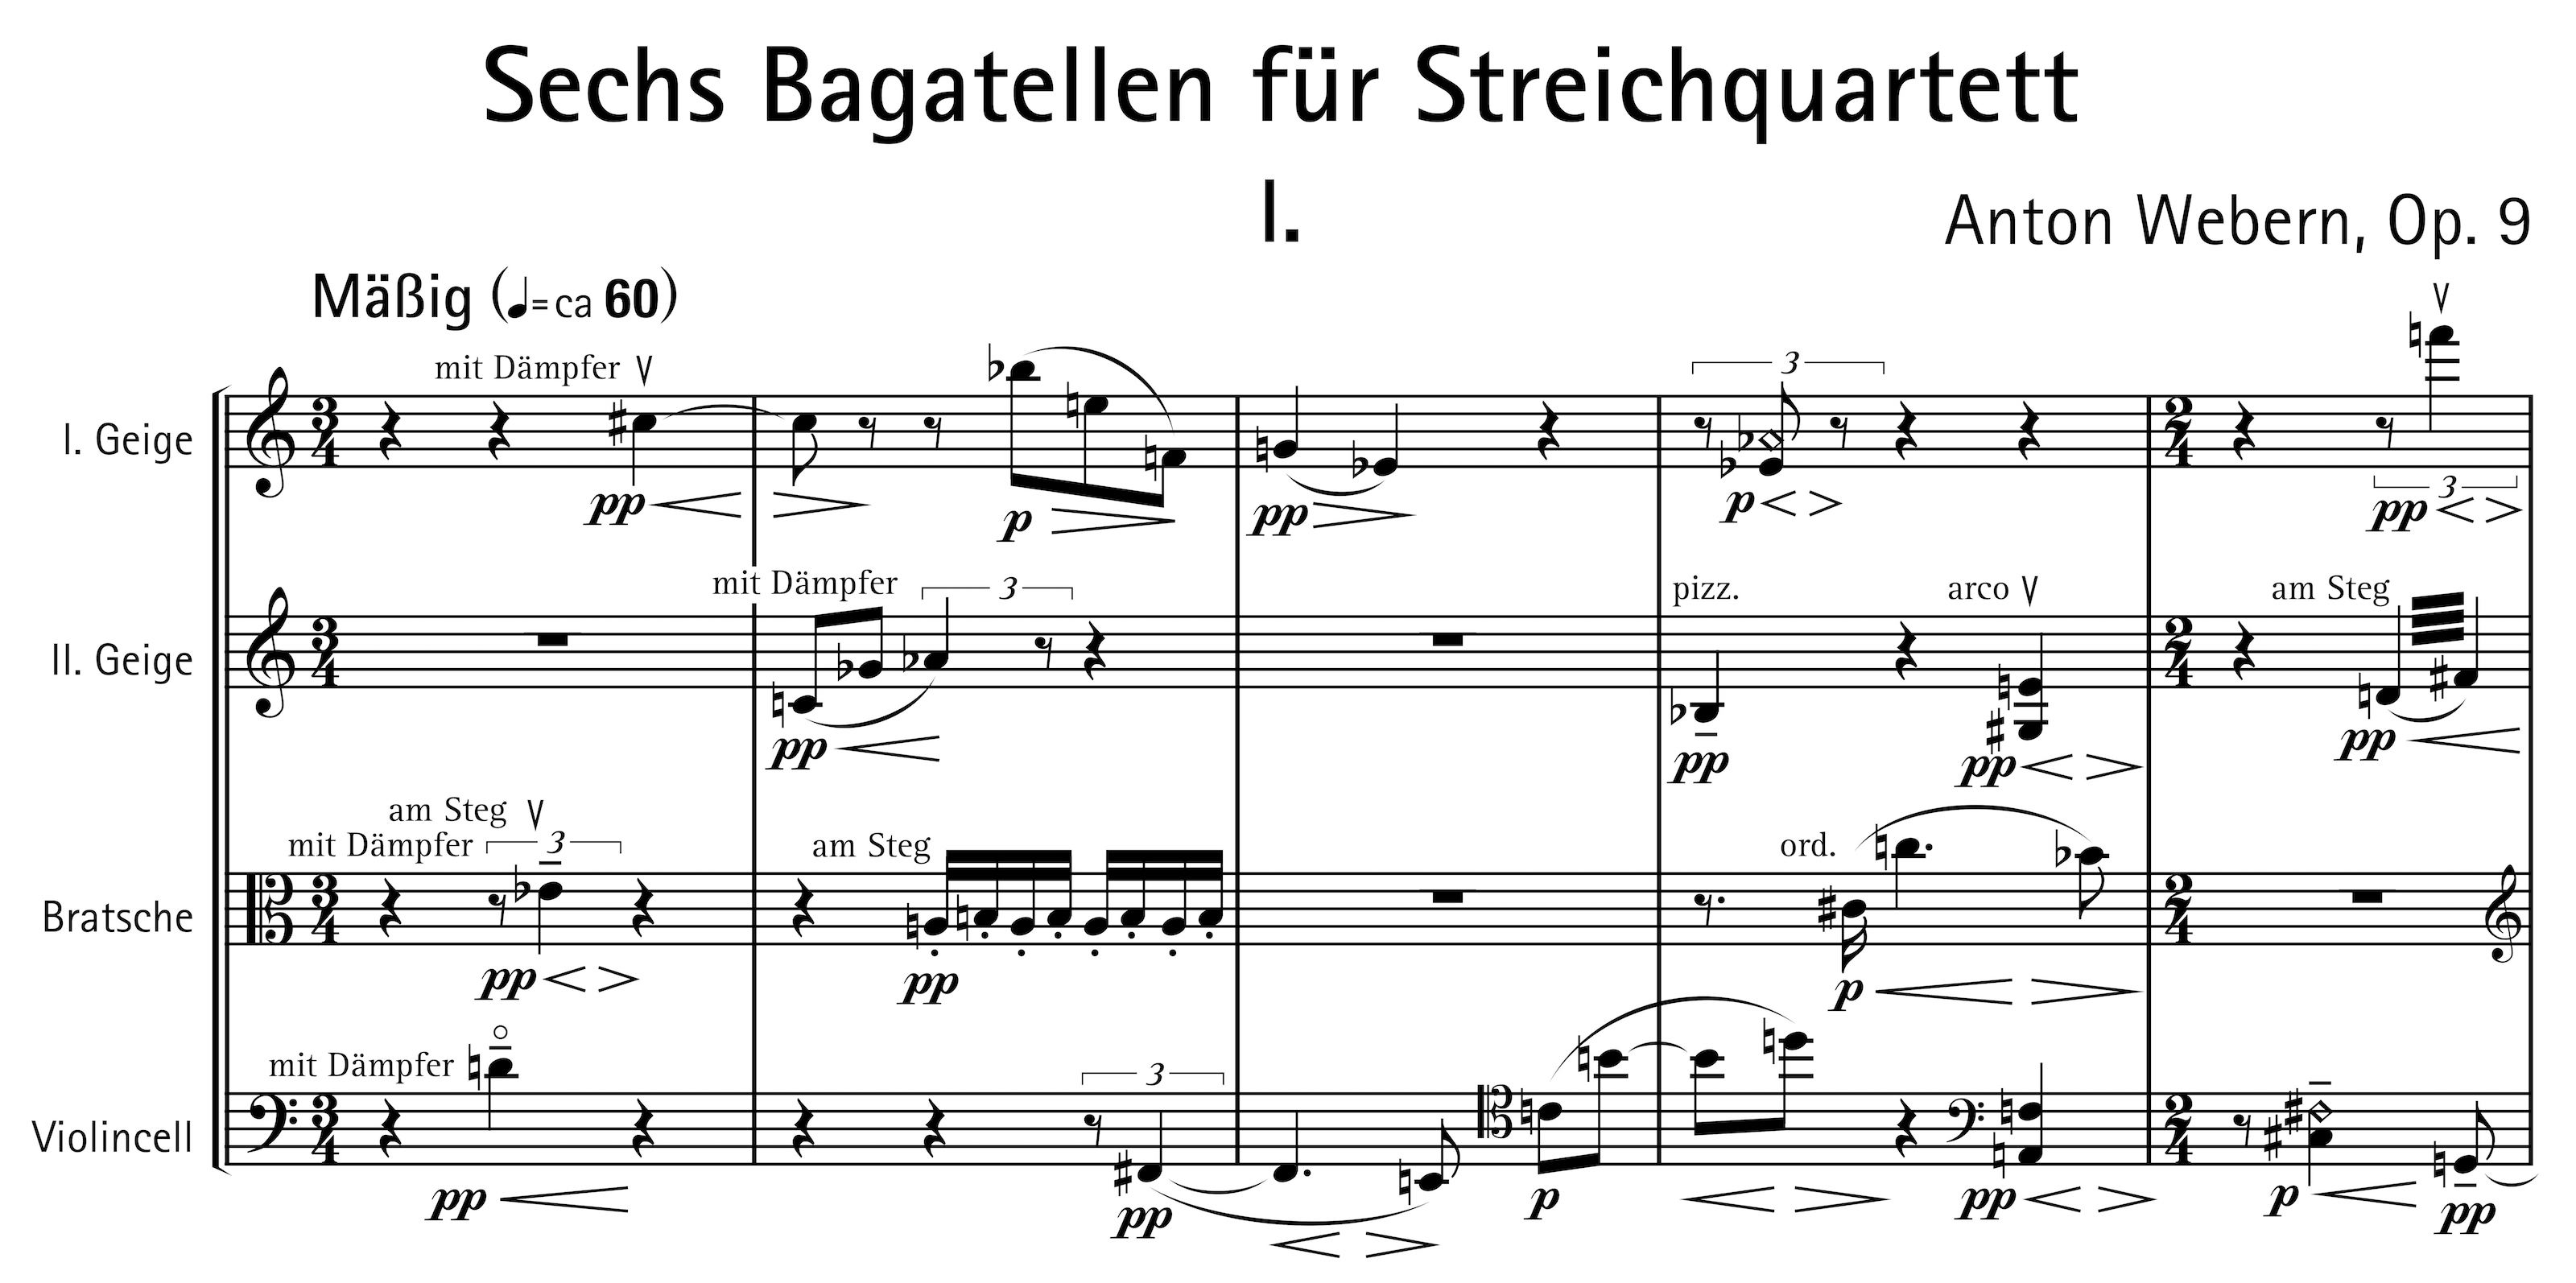 An interview with new music specialist jef chippewa about his notation by shirling neueweise jef chippewa in 2015 using neueweise fonts buycottarizona